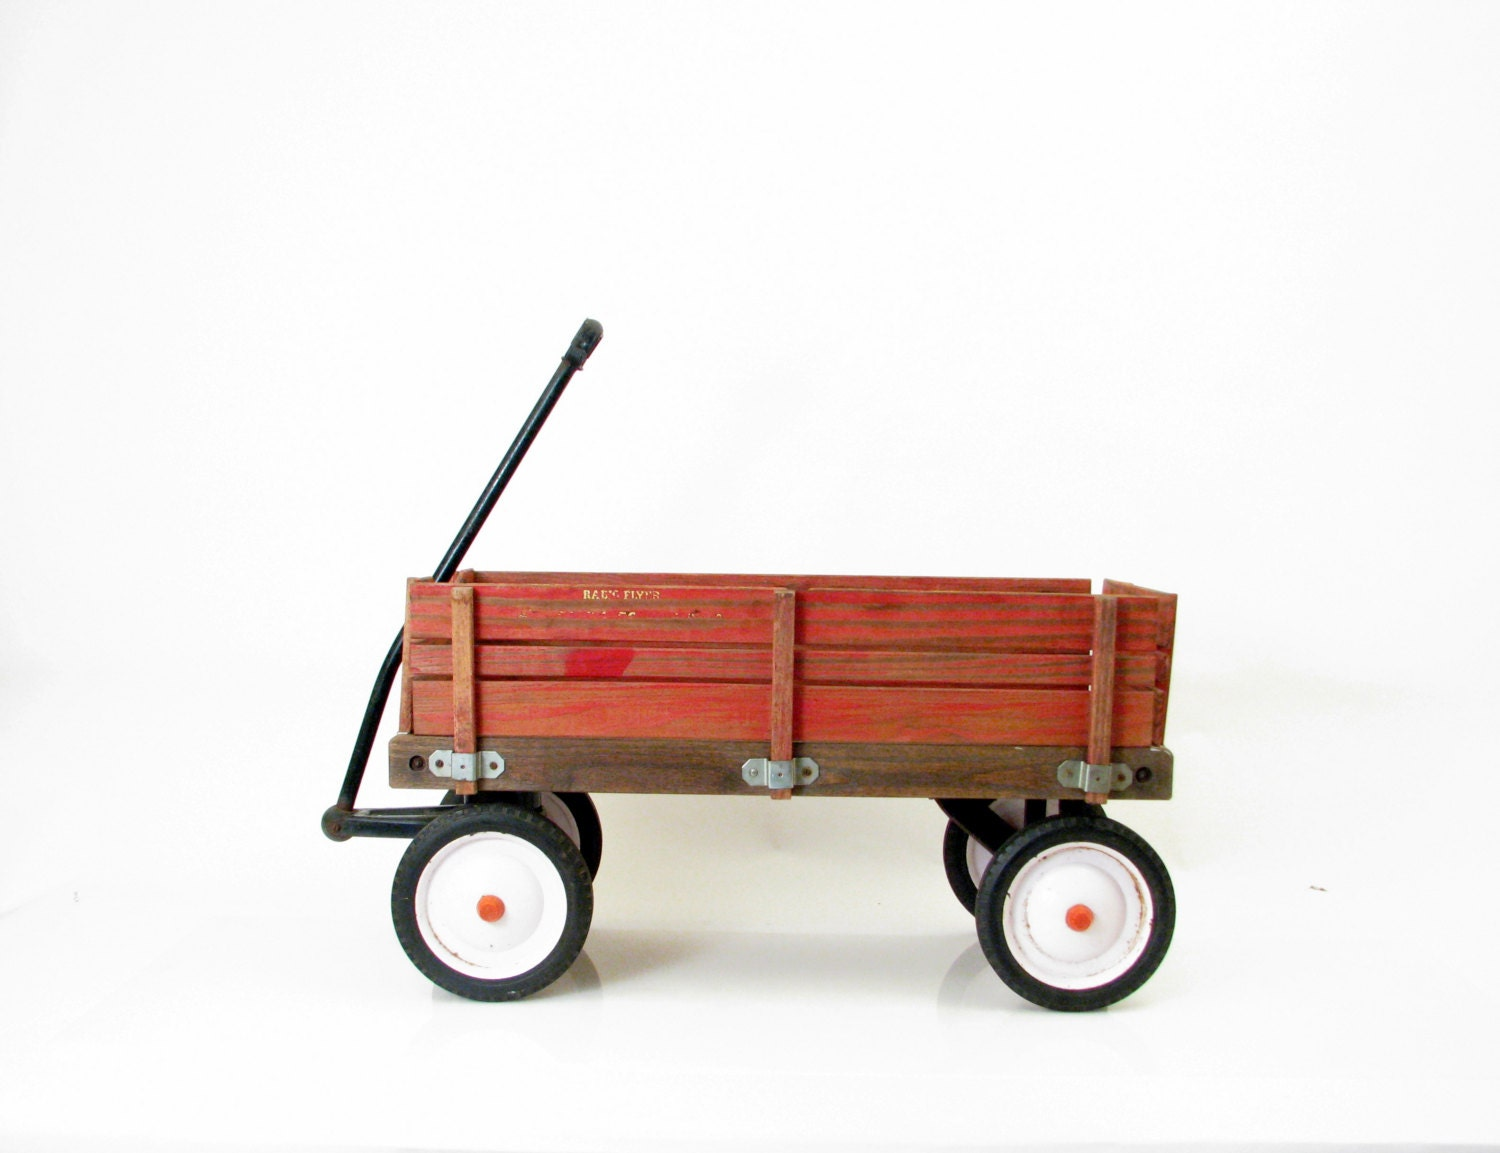 Vintage Wagon 1980s Radio Flyer Red Wagon Removable Wood Sides